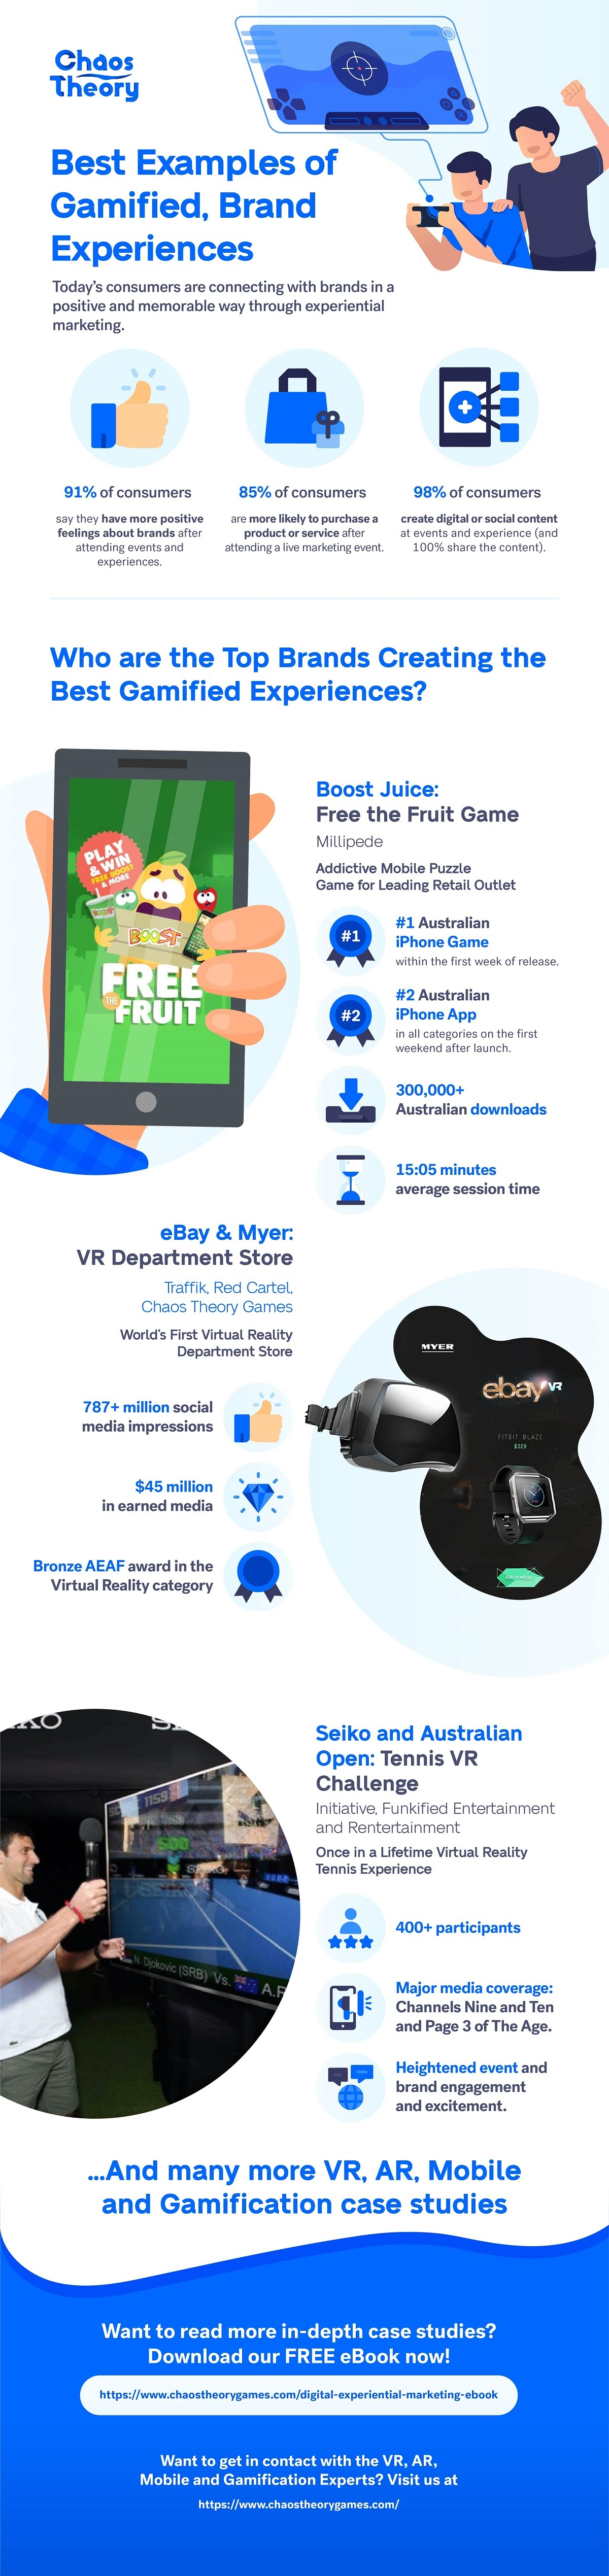 Best VR, AR And Mobile Experiential Marketing Campaigns #infographic #Marketing #VR #AR